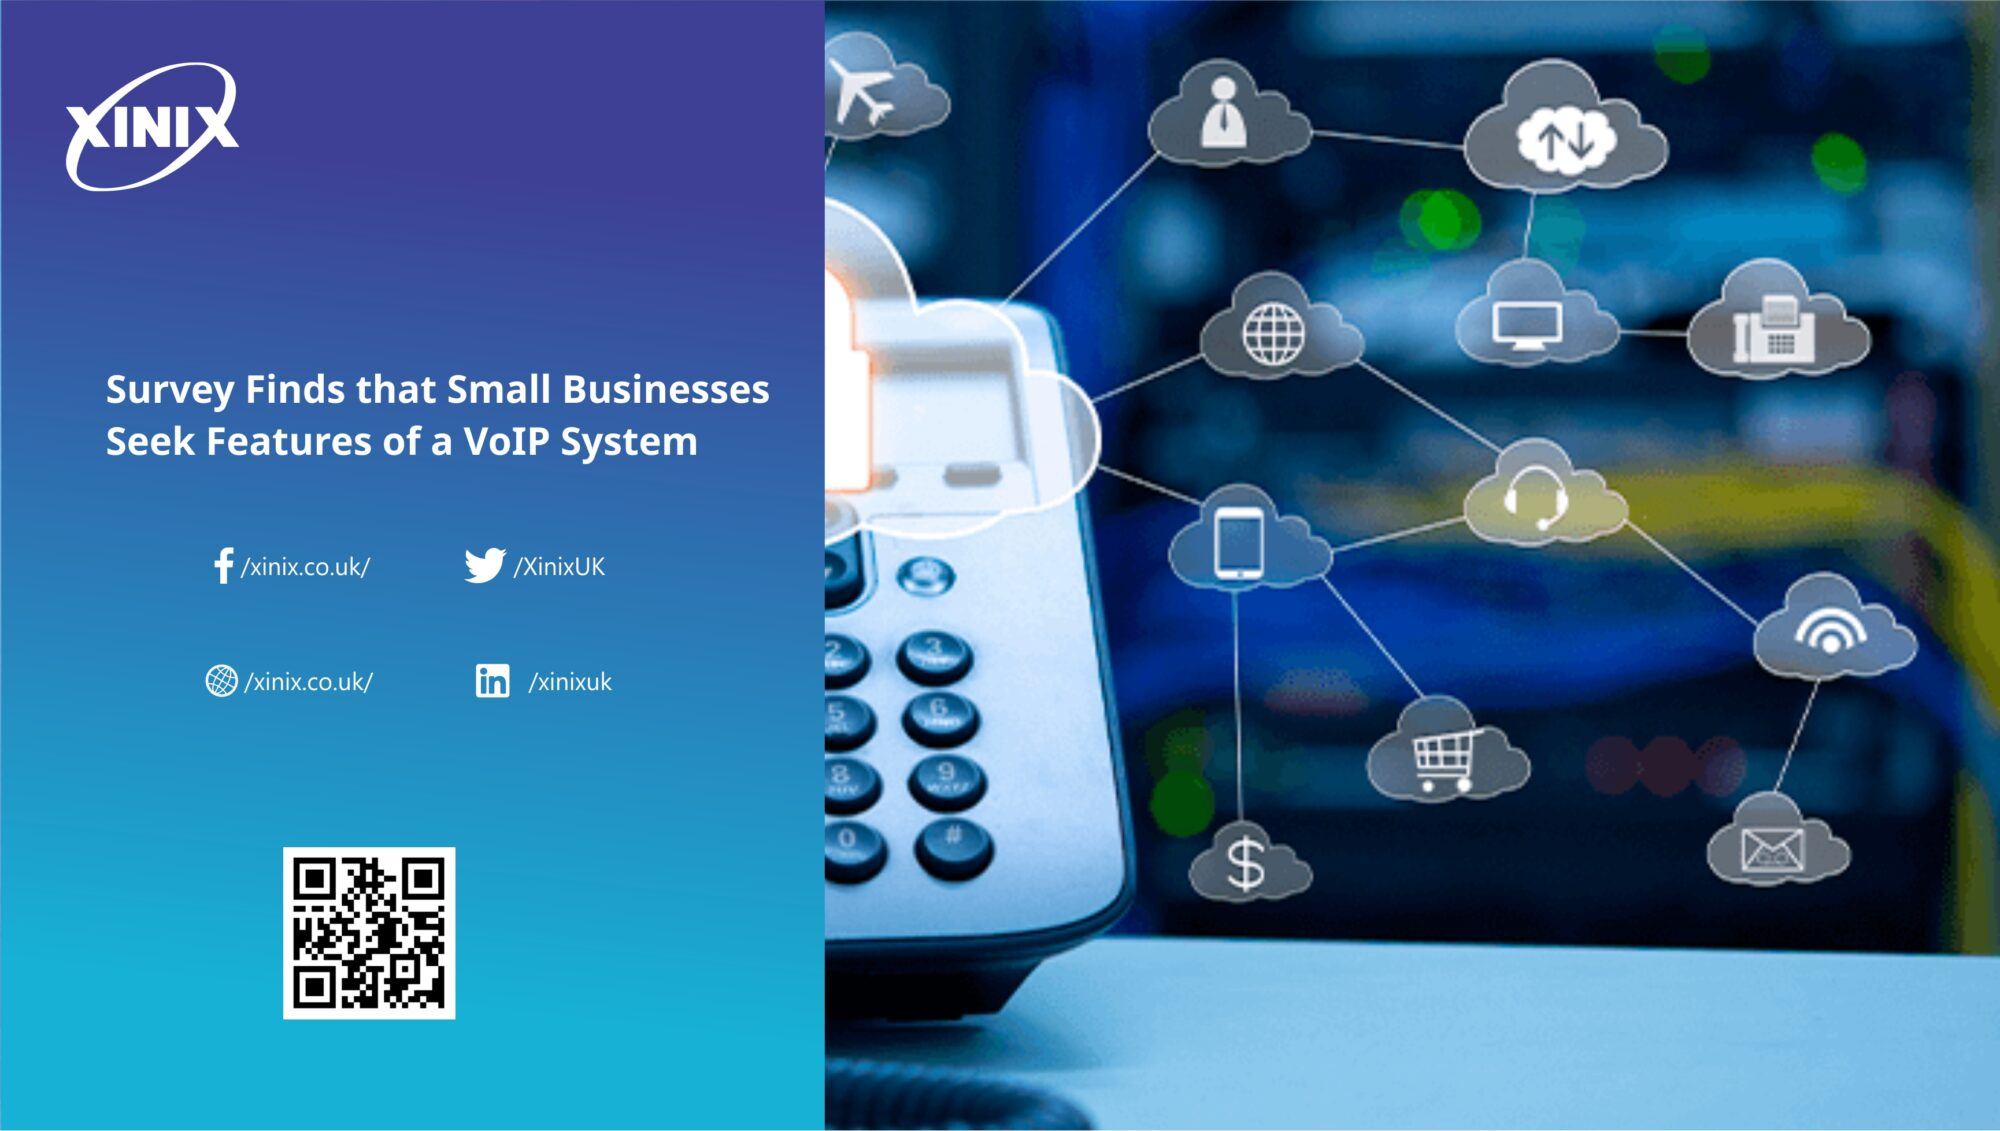 Survey Finds that Small Businesses Seek Features of a VoIP System